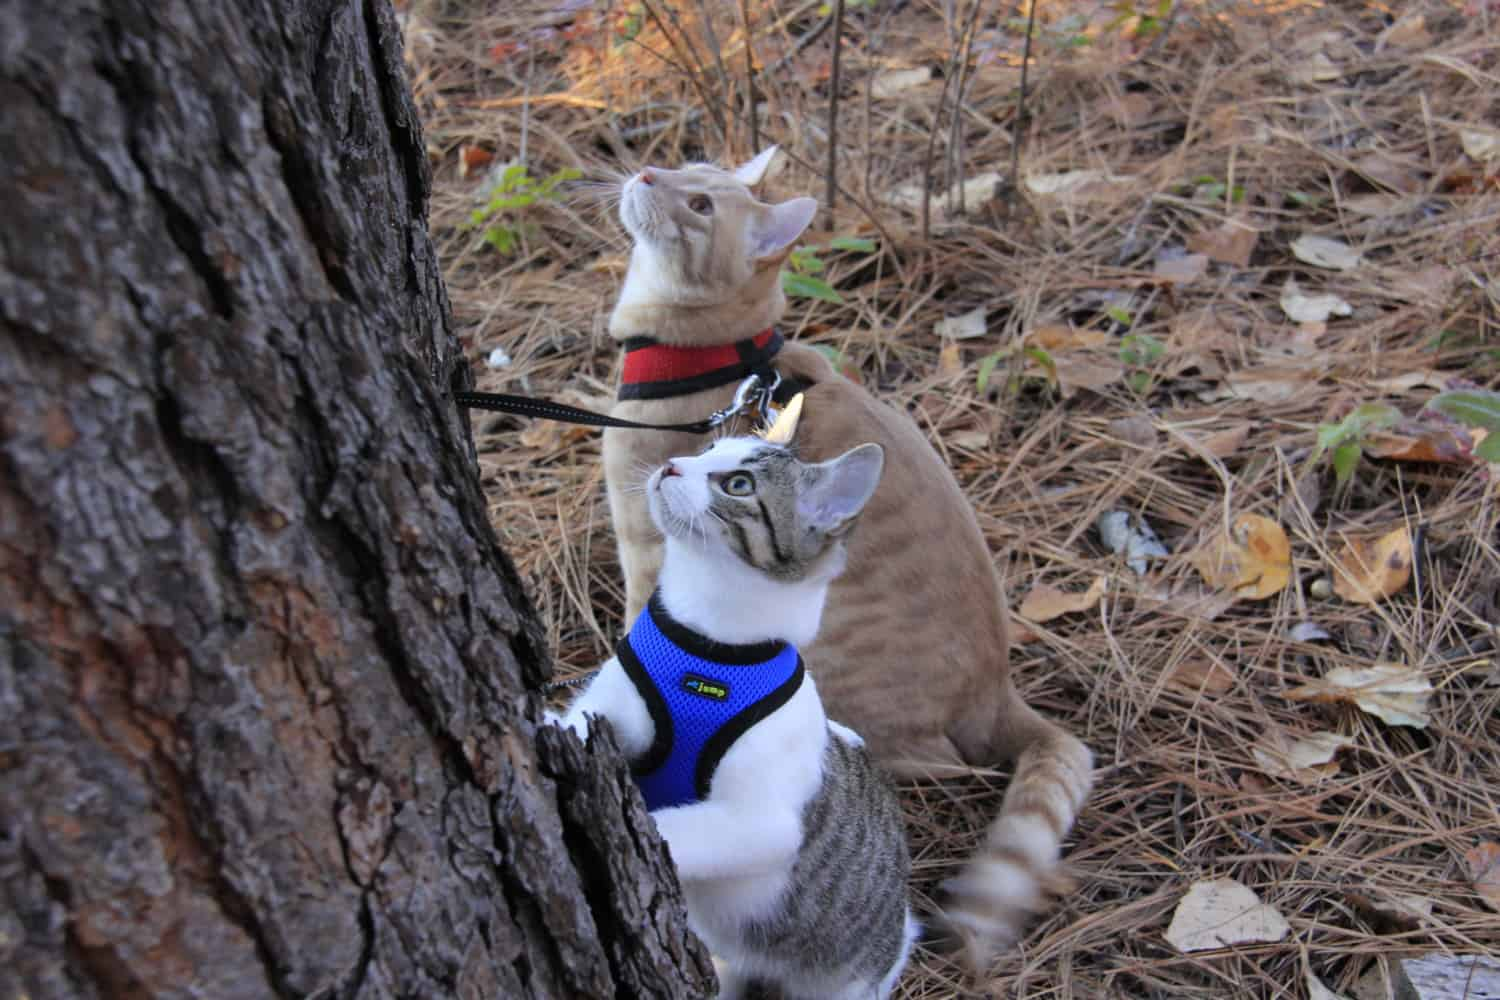 Choosing the right belt for your cat